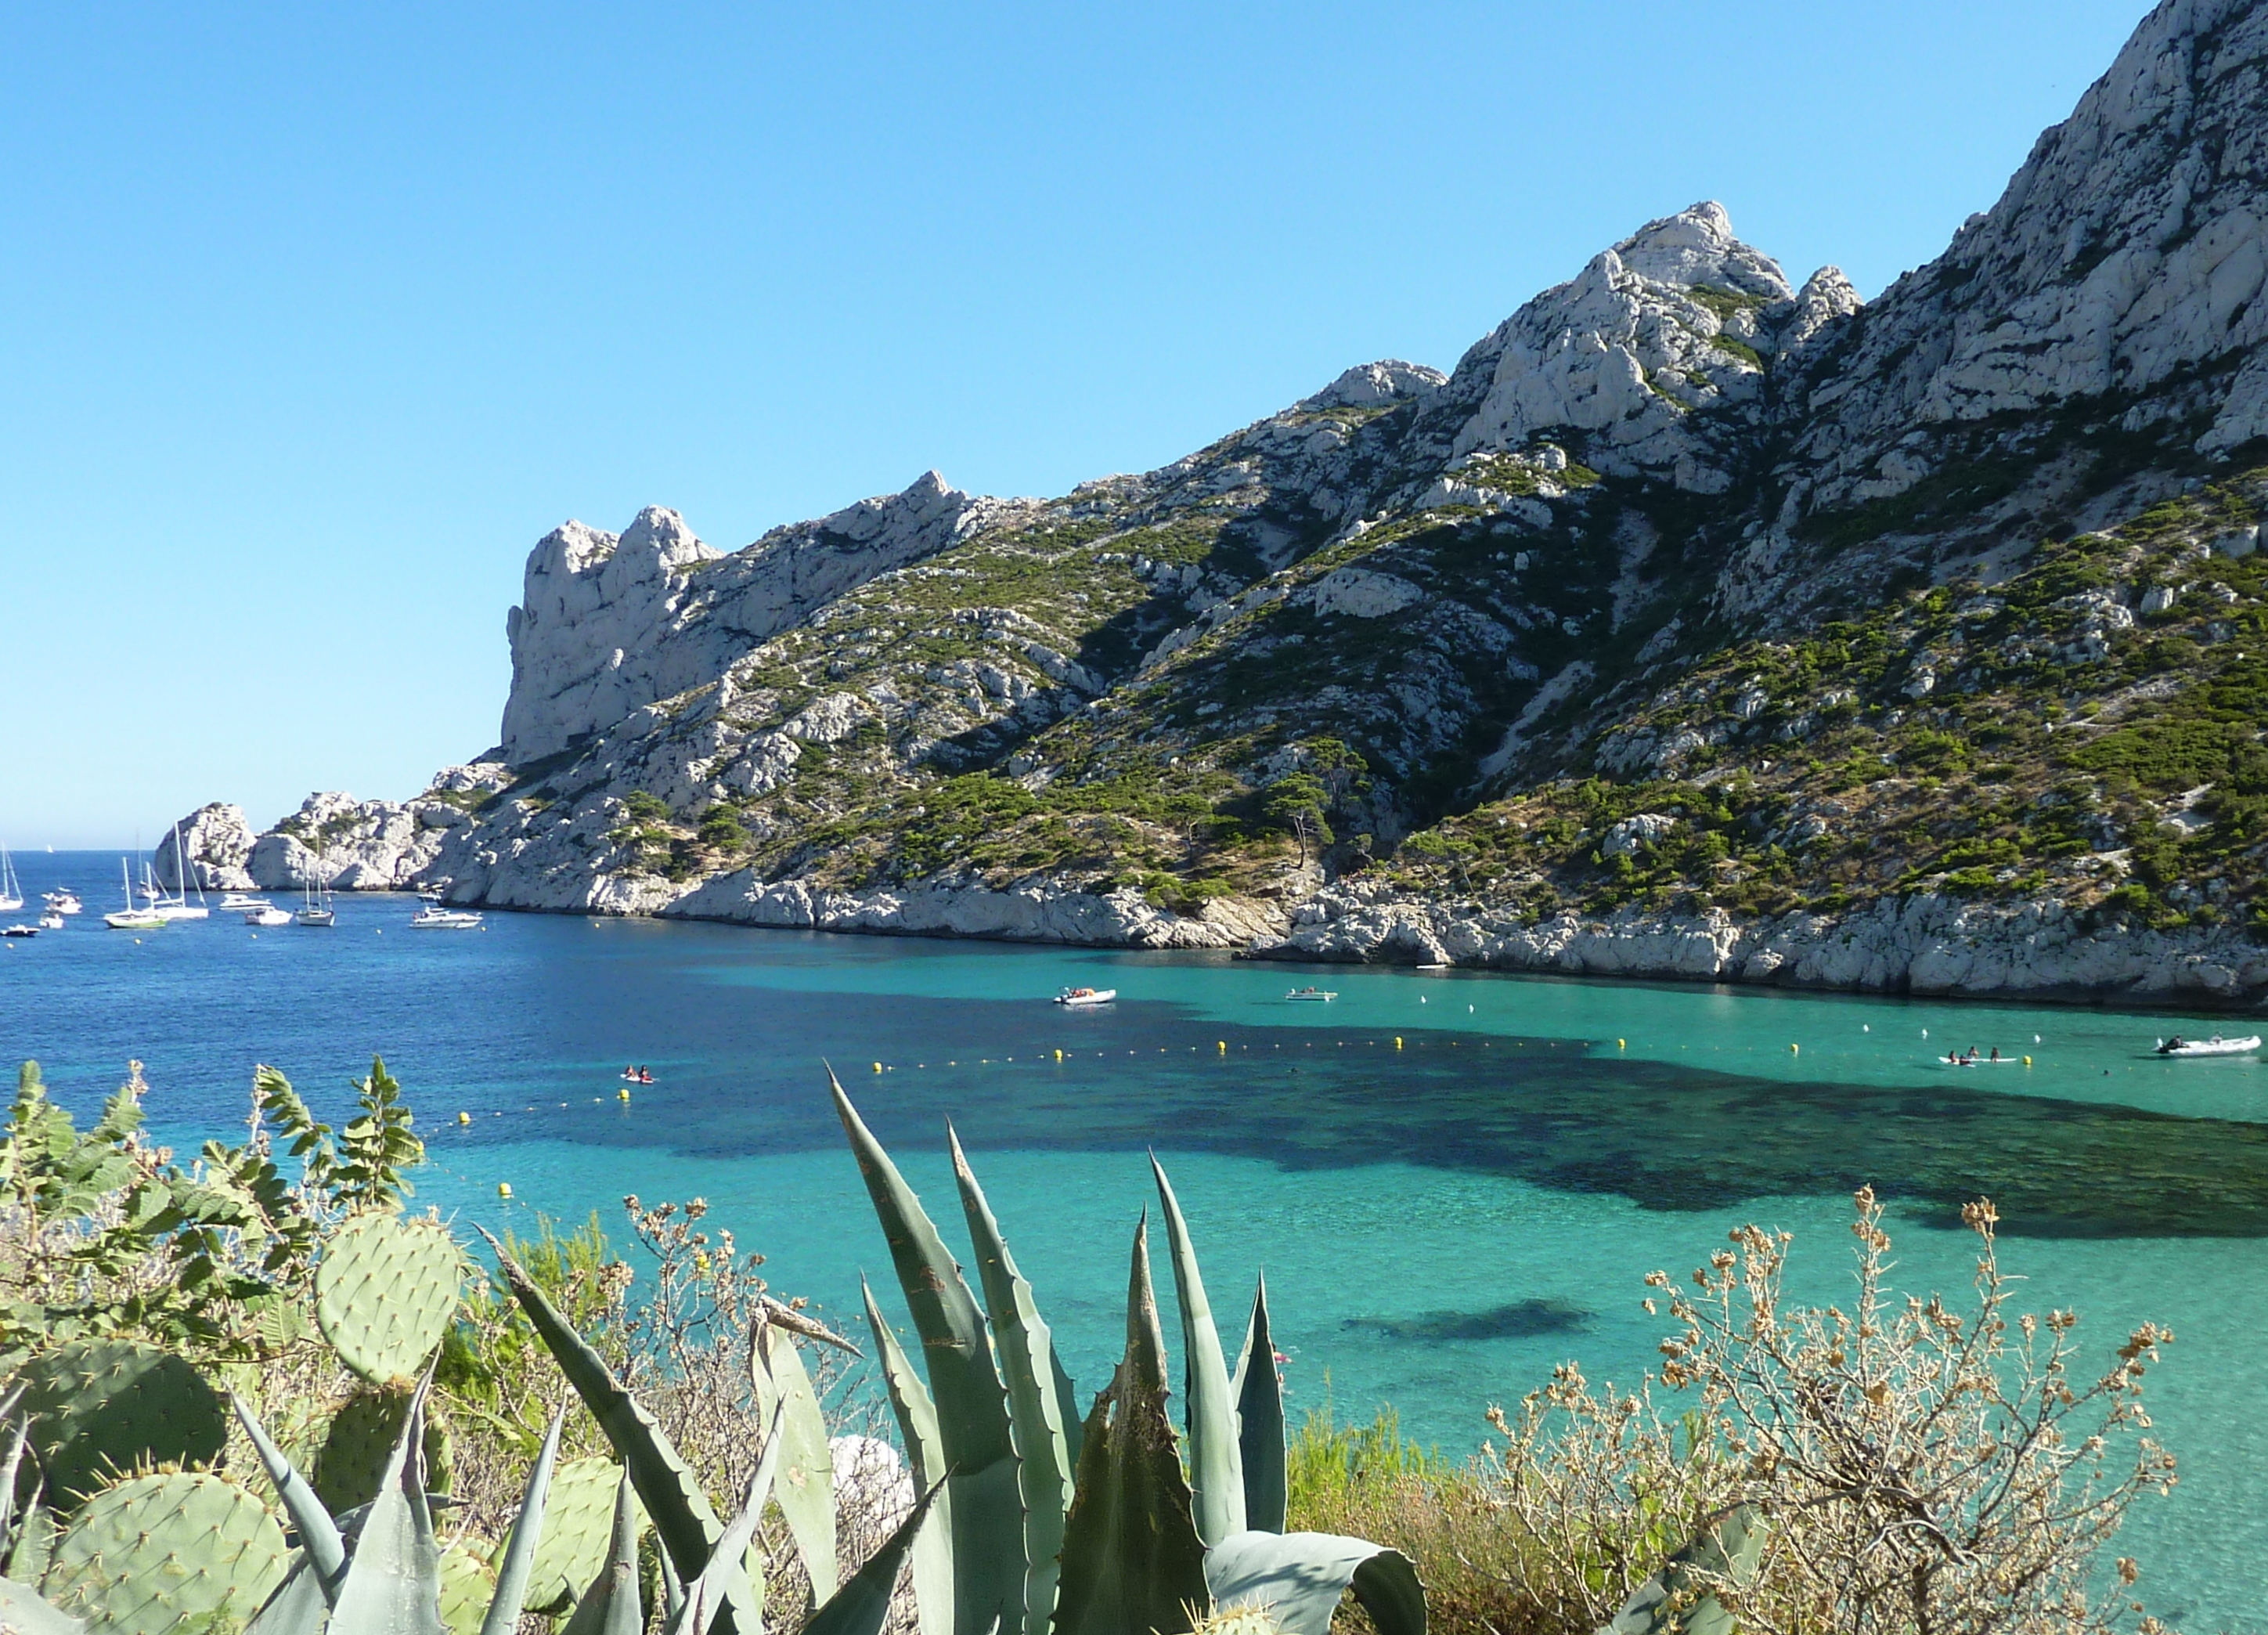 Office Tourisme Marseille Calanque Beauty 2016 Marseille France 1 6 May 2016 Social Activities